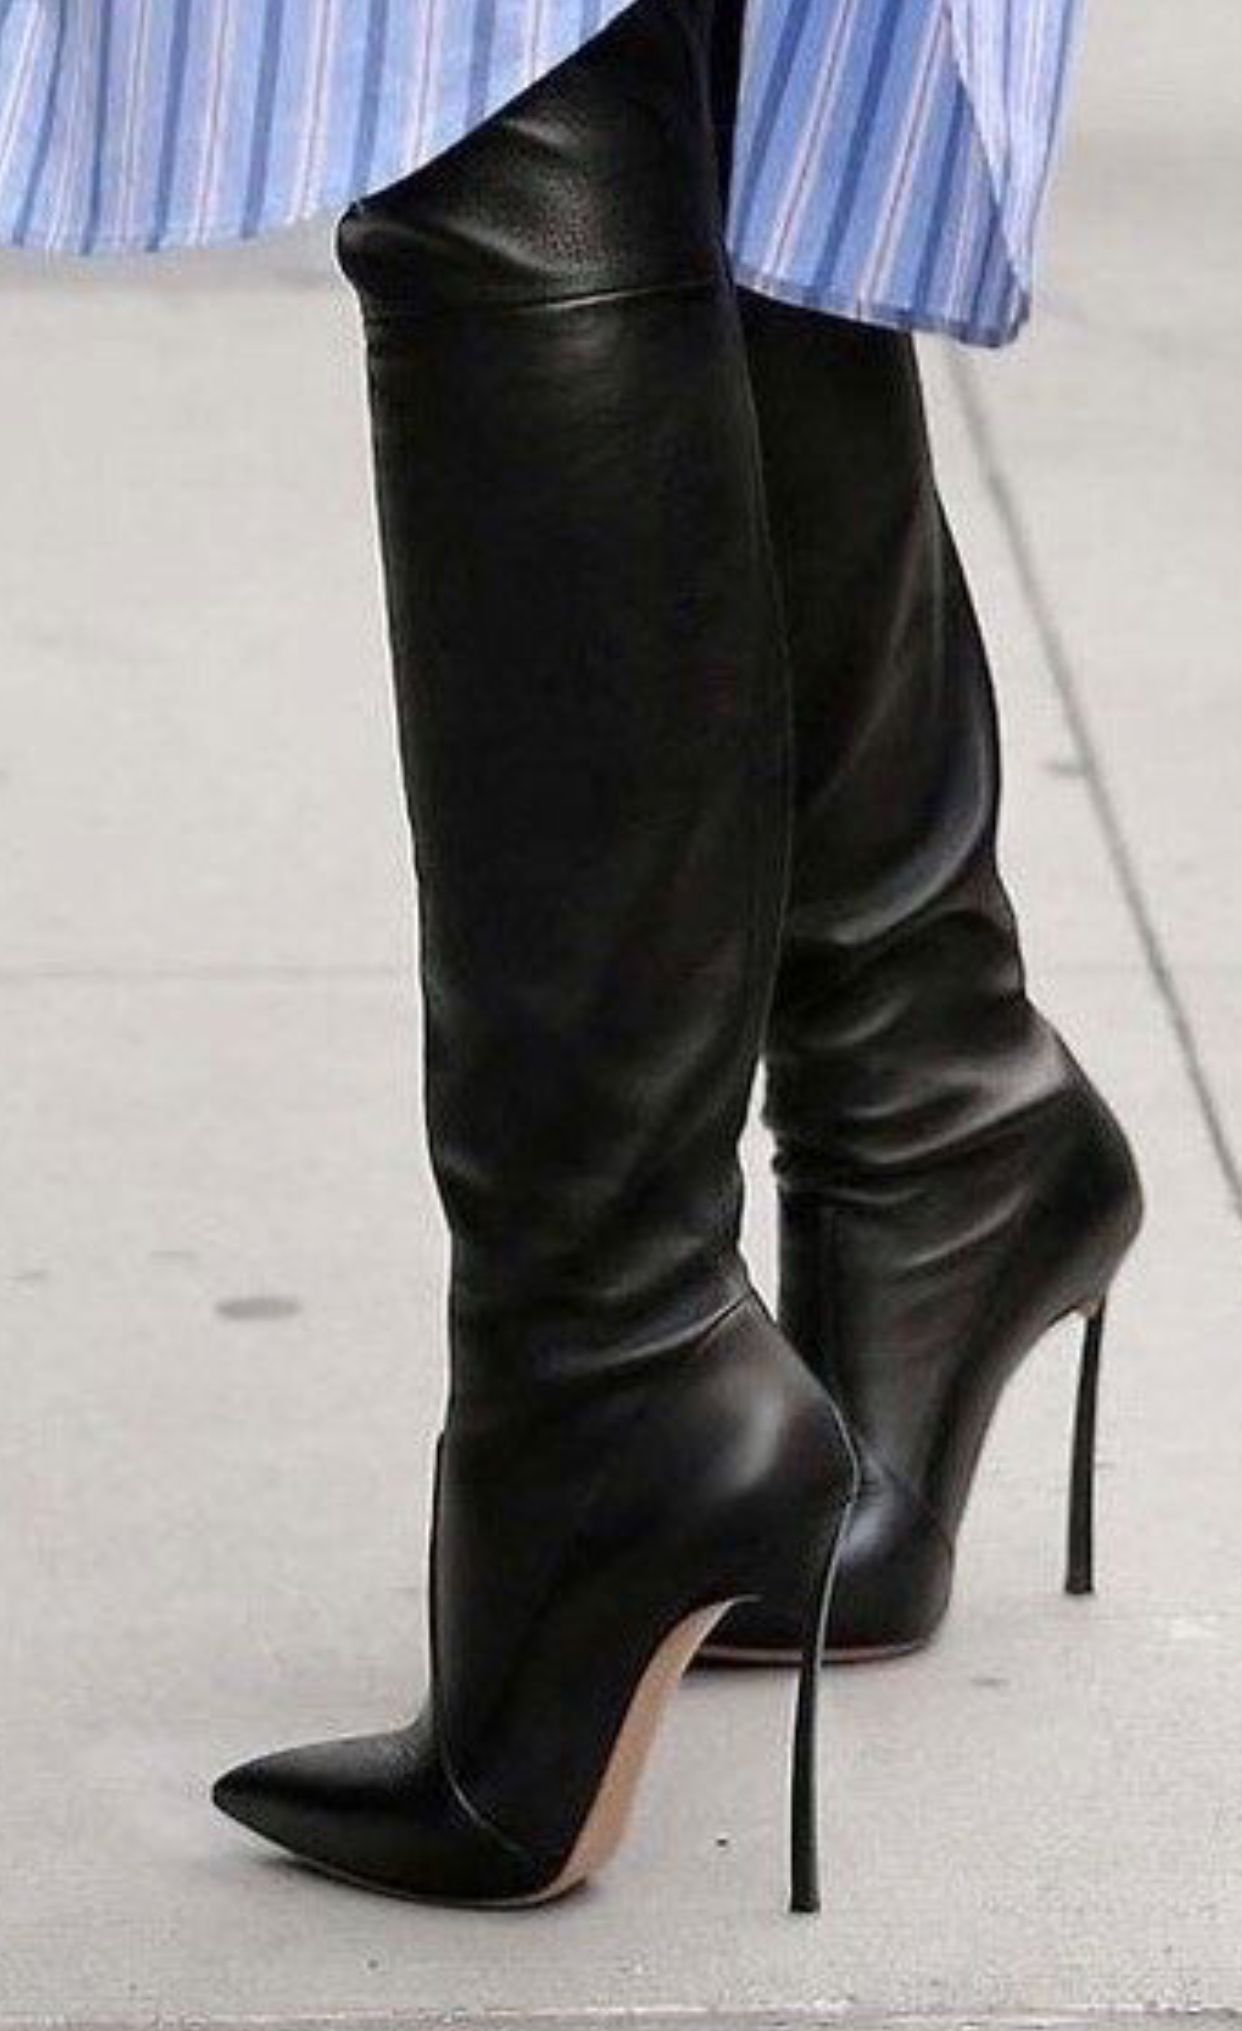 Pin by Anna Svensson on High Heel Boots N Shoes | Boots